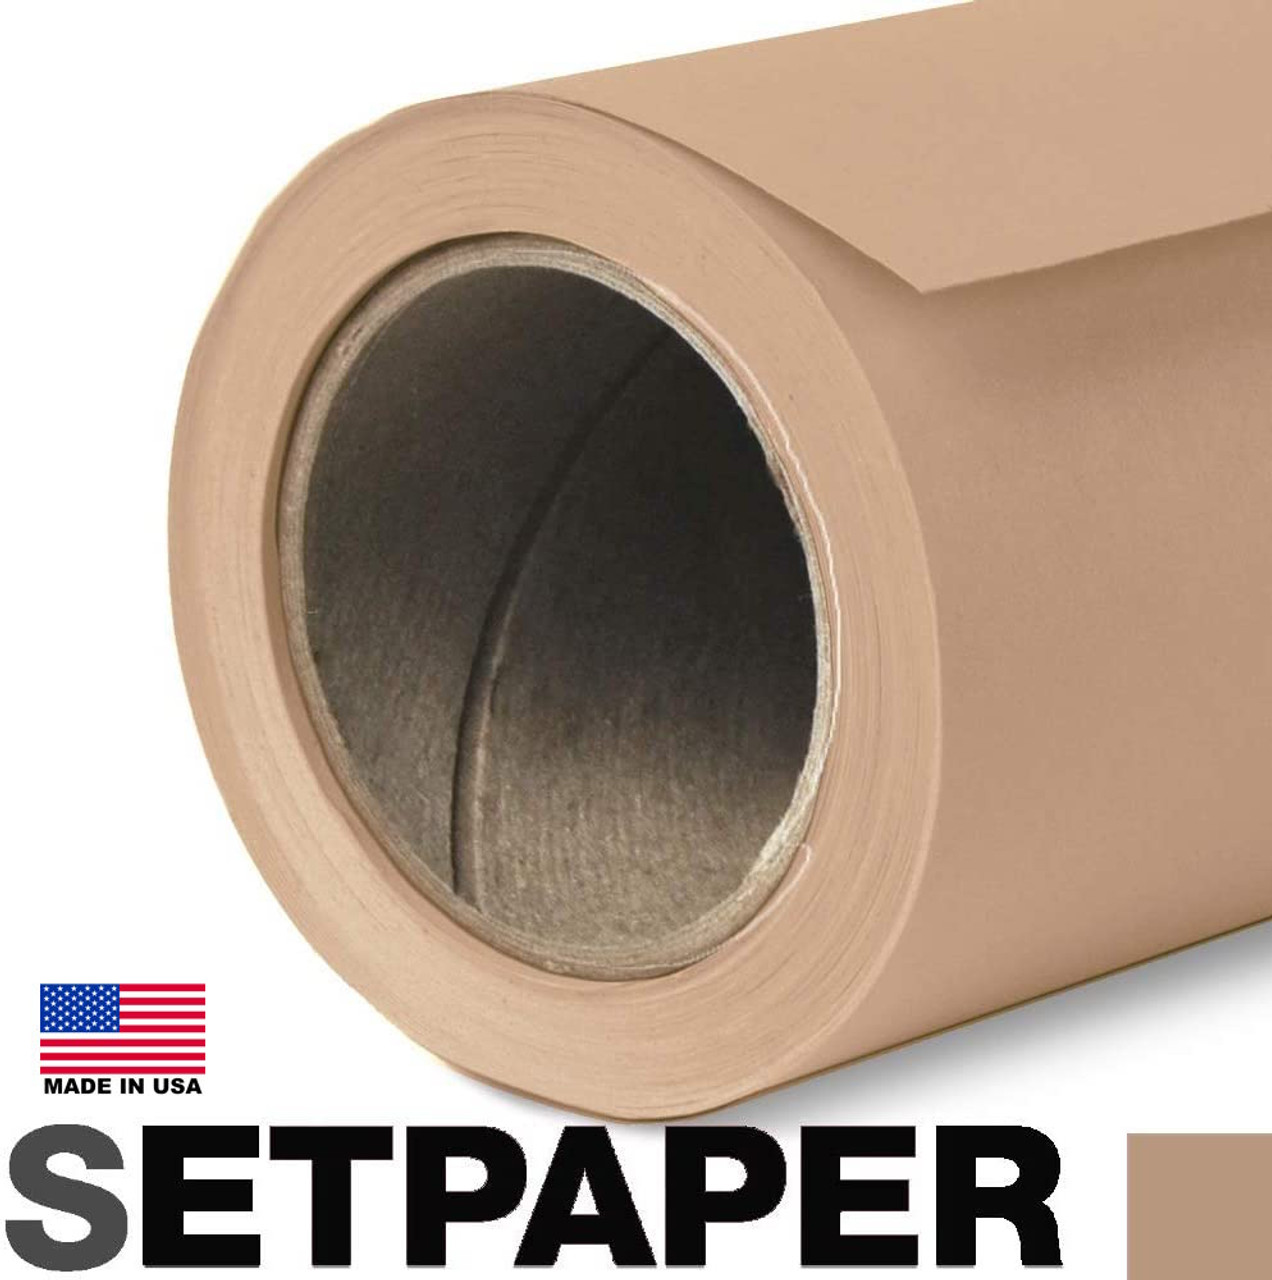 "EXTRA LONG 14 SETPAPER - NATURAL 107"" x 36' (2.7 x 11m)"